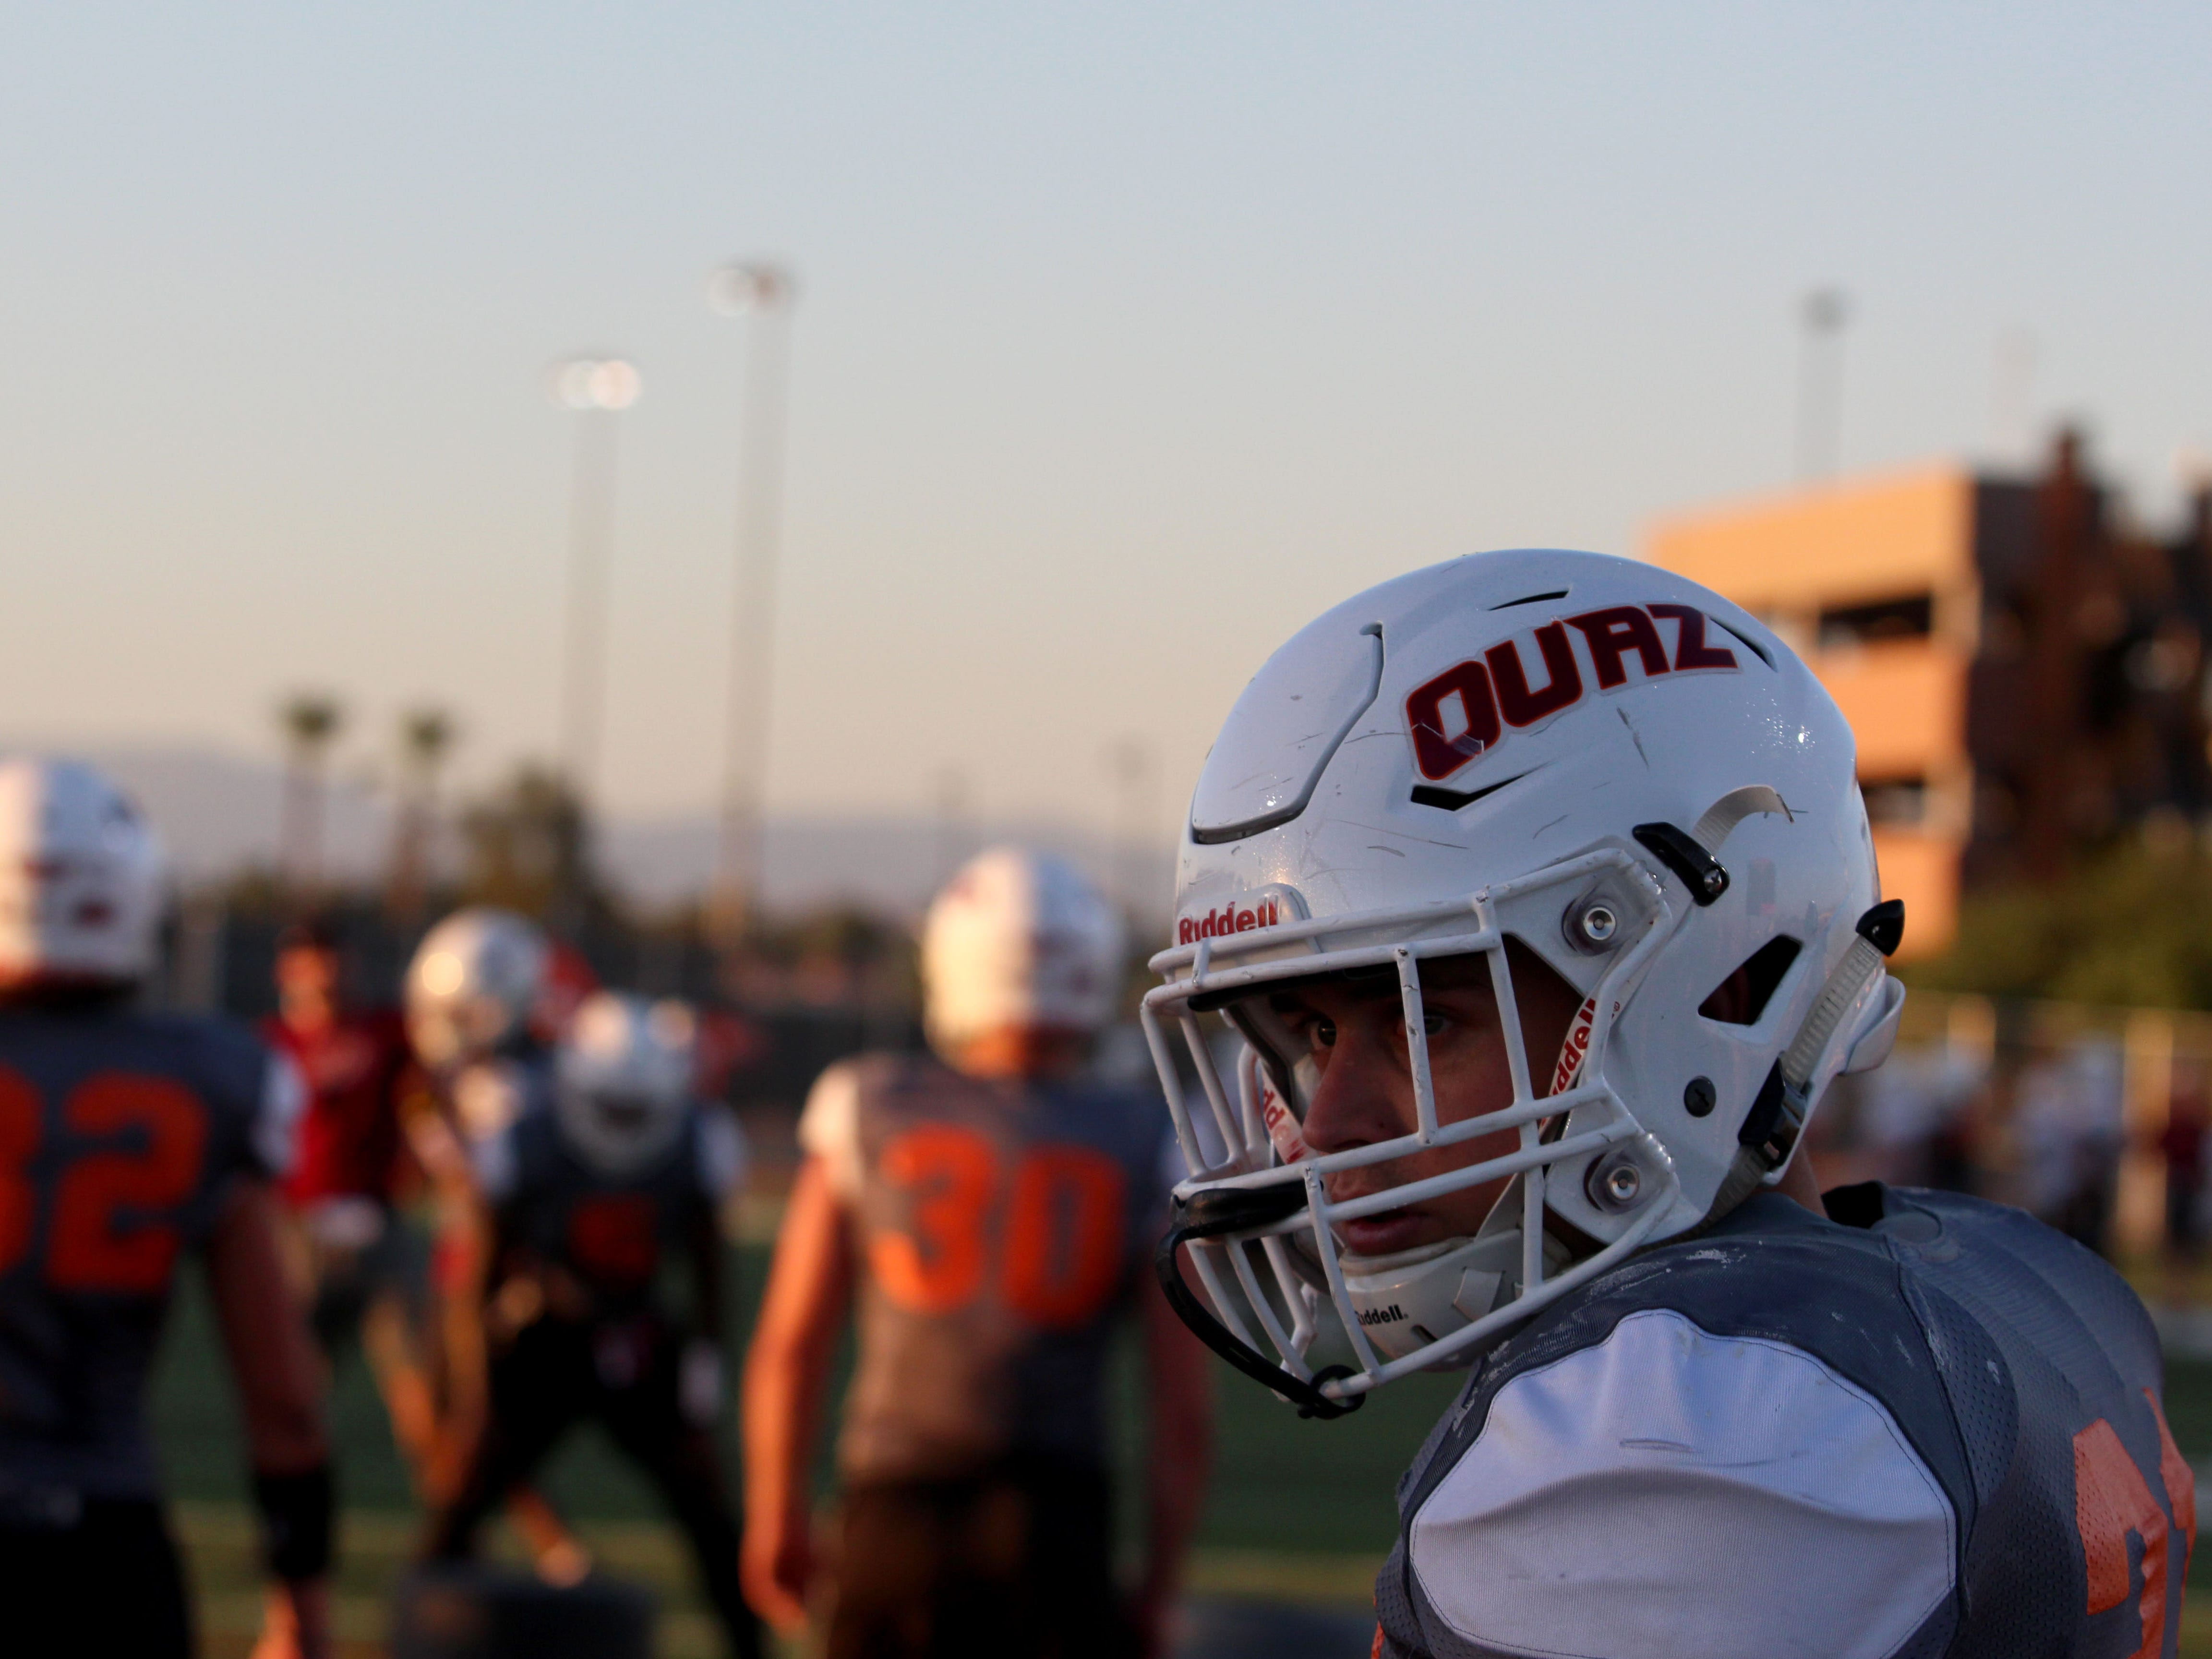 OUAZ players practice on Tuesday night in Surprise on Sept. 11, 2018 for its second home game against Oklahoma Panhandle State.